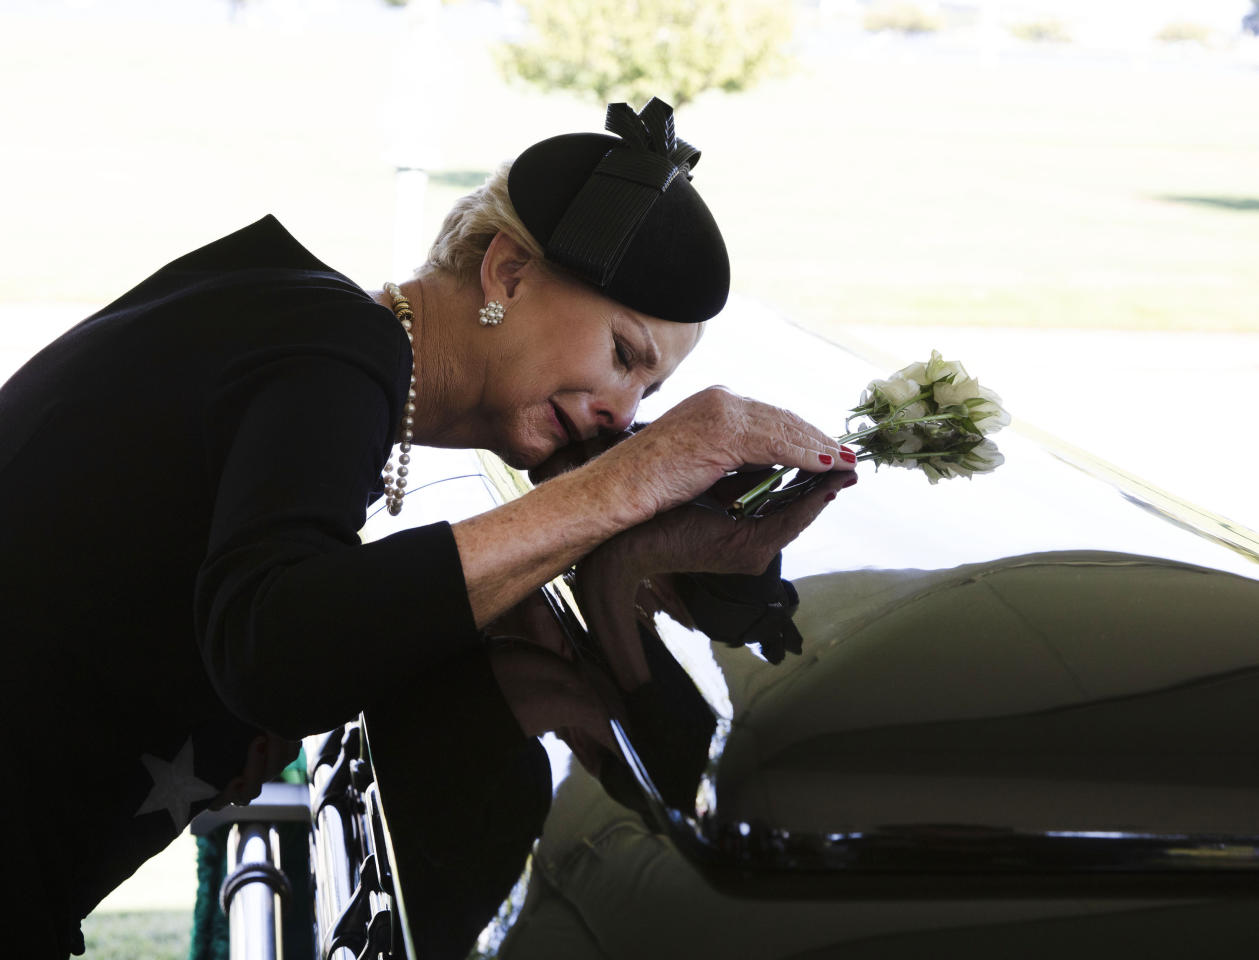 <p>In this photo provided by the family of John McCain, Cindy McCain lays her head on the casket of Sen. John McCain, R-Ariz., during a burial service at the cemetery at the United States Naval Academy in Annapolis, Md., on Sunday, Sept. 2, 2018. (Photo: David Hume Kennerly/McCain Family via AP) </p>